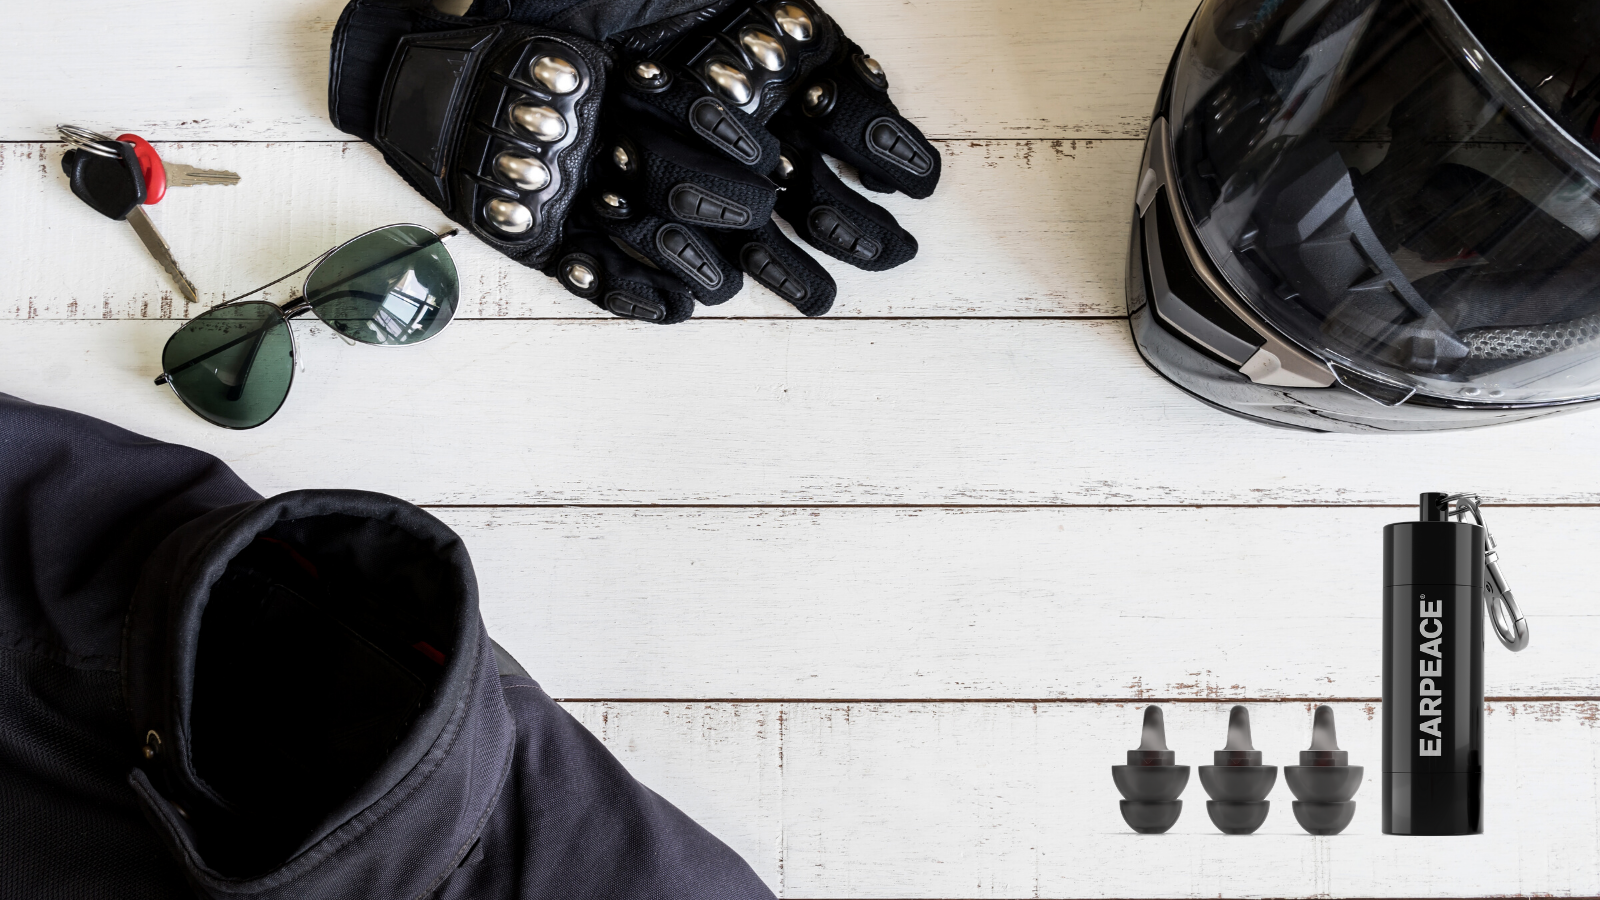 Motorcycle Safety Course 201 - 5 Types of Gear You Need Every Time You Ride